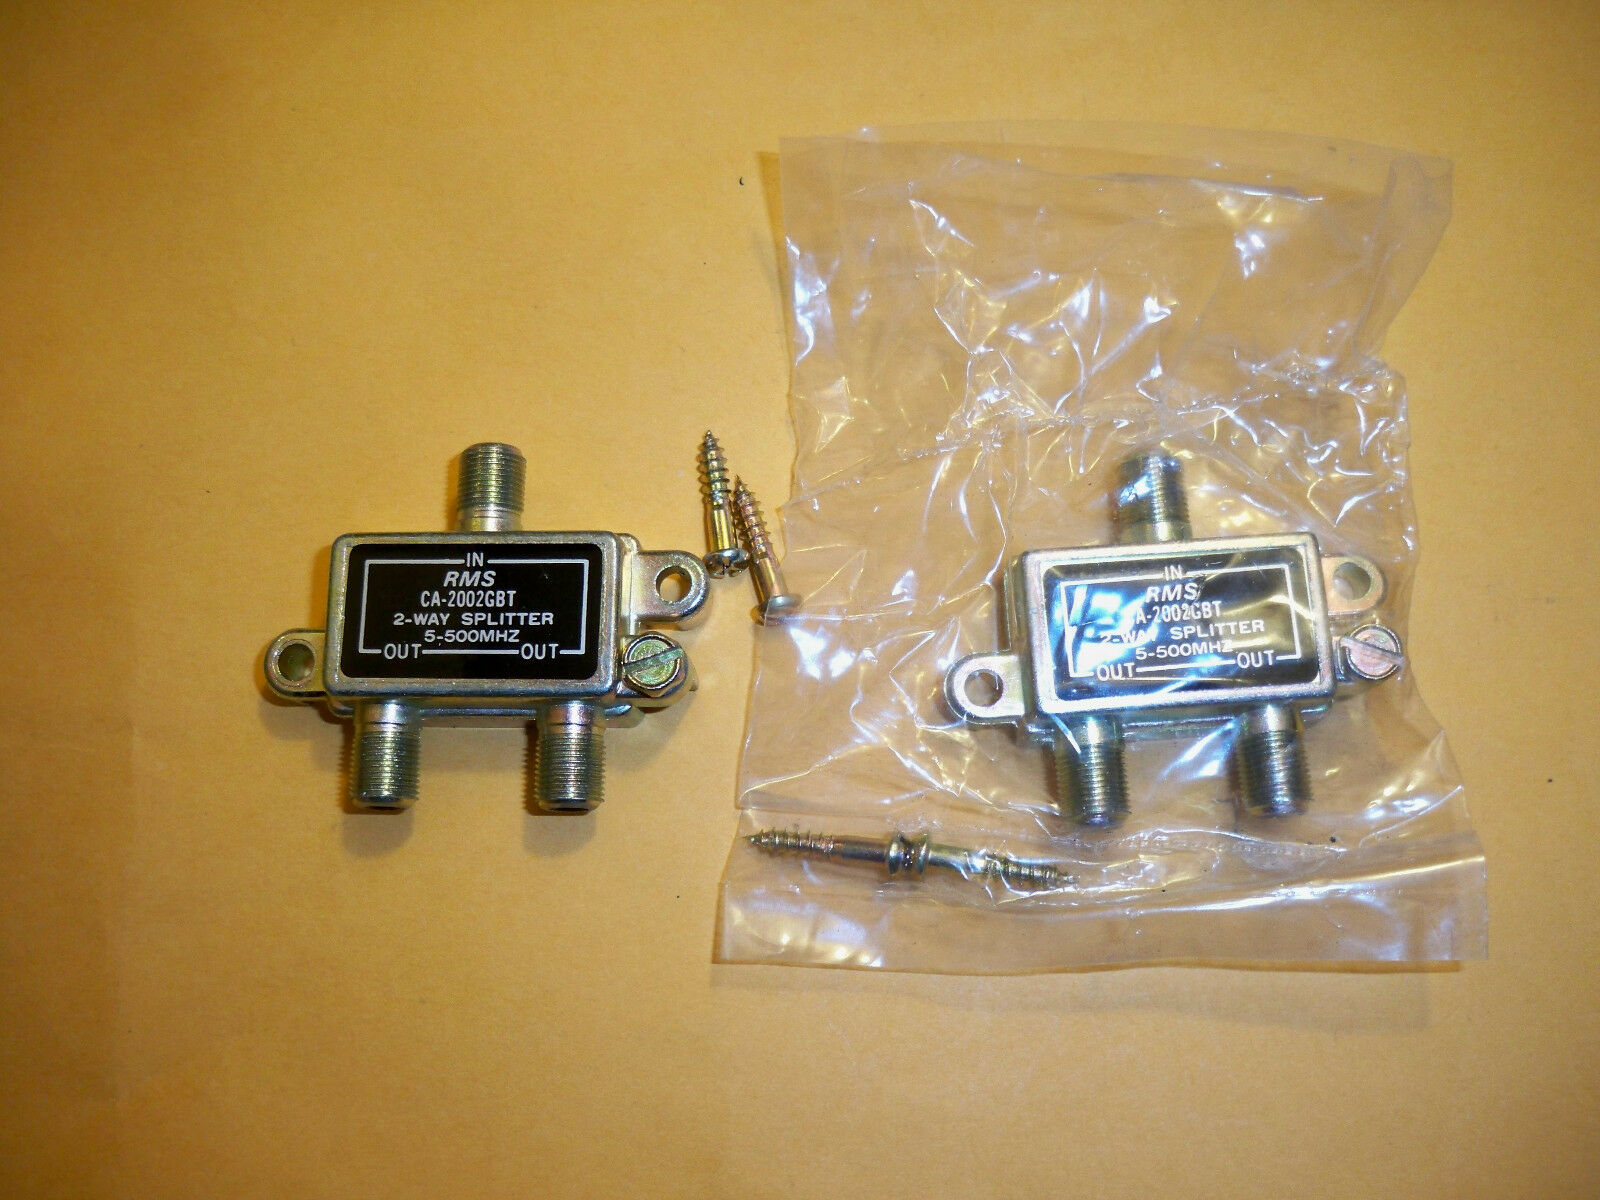 Two Rms Ca 2002gbt 2 Way Splitter Combine Cable Tv Satellite Switch 1 Of 1free Shipping See More